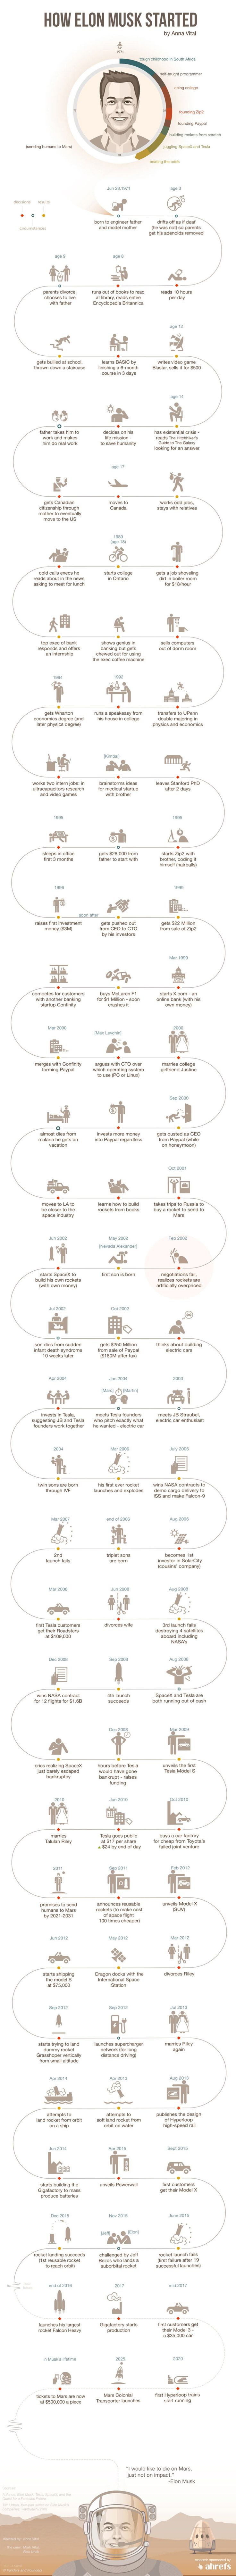 Elon Musk Biography Timeline Infographic #ceo #business #space #entrepreneur